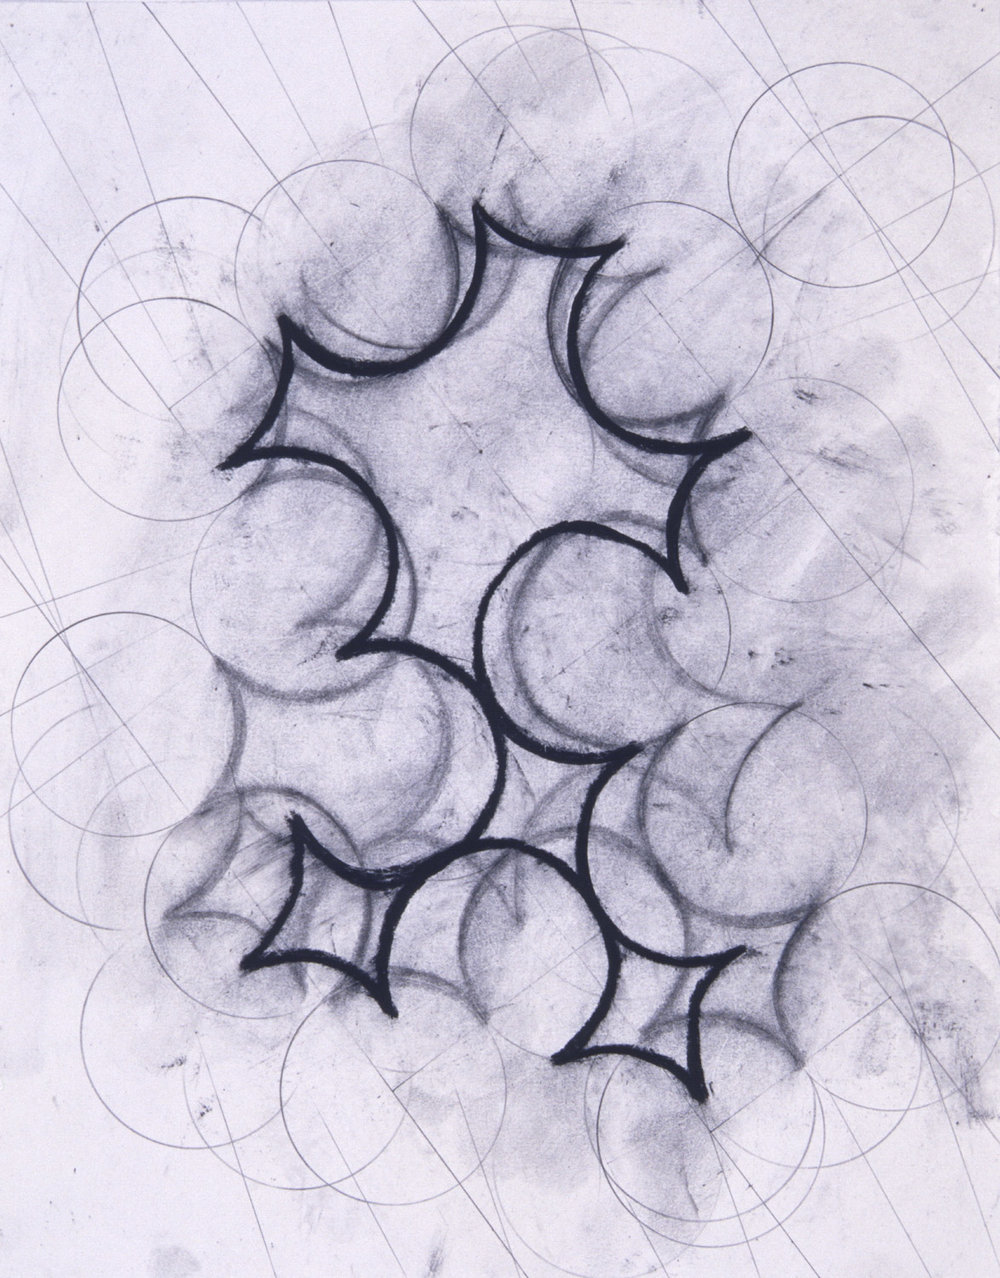 "9/20 #2, 2000, 11x14"", charcoal & wax on paper"